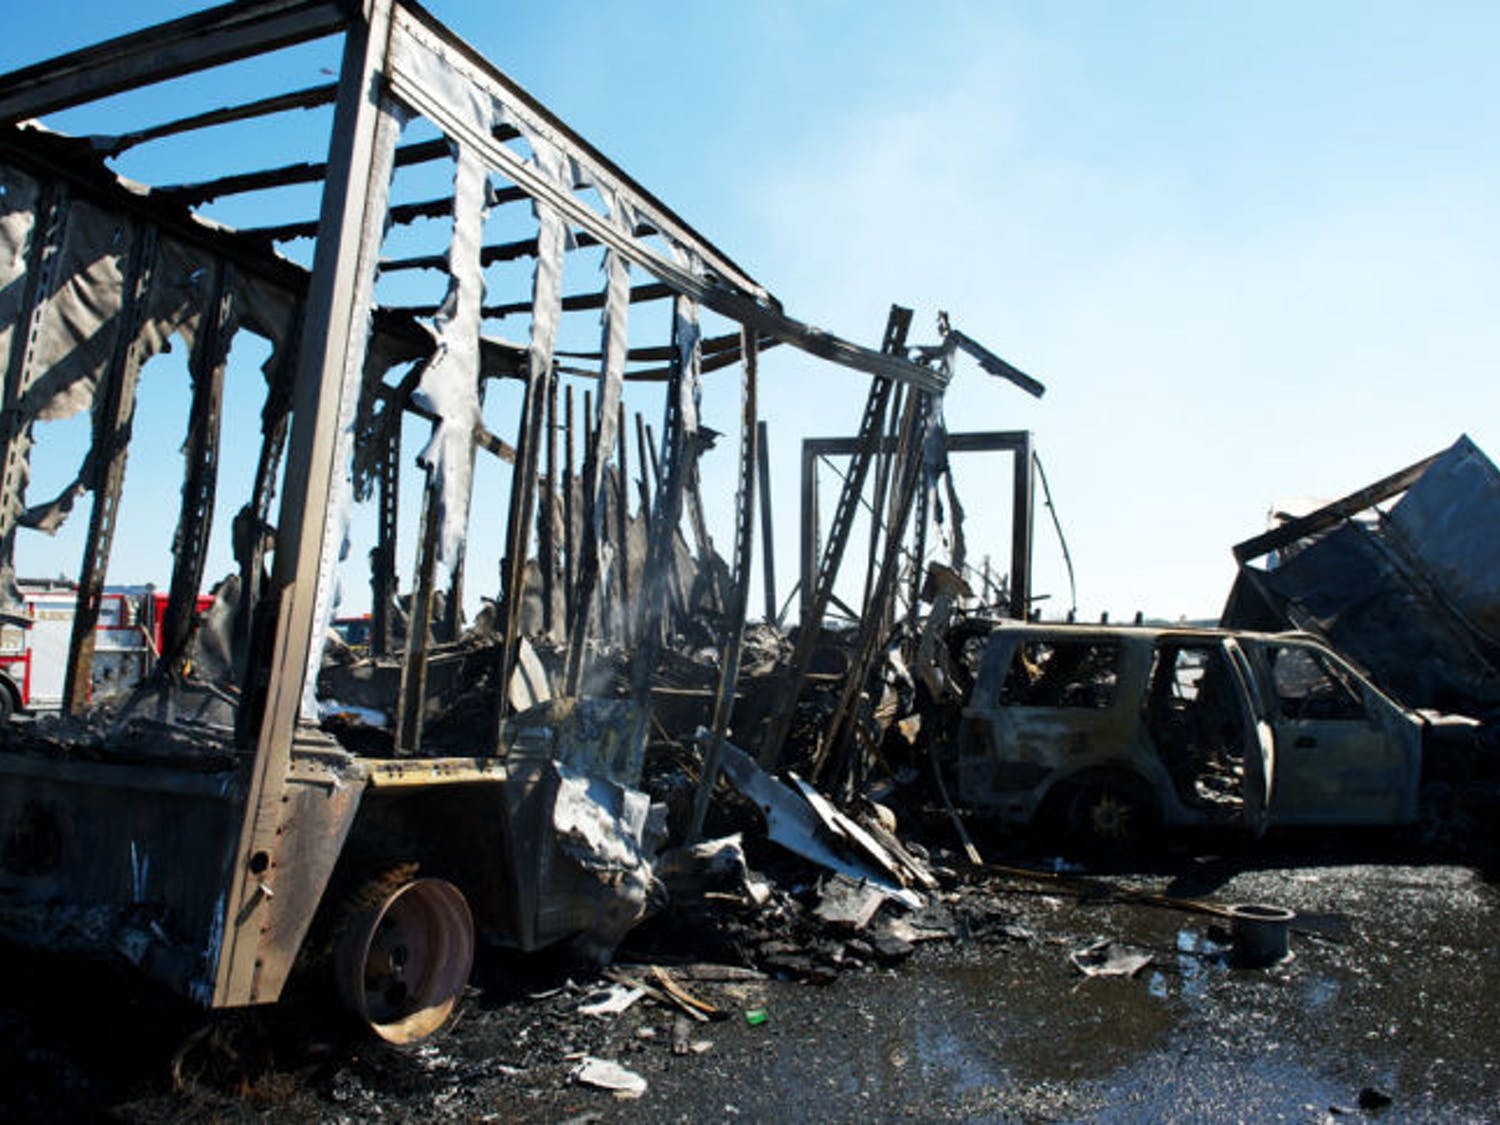 The charred wreckage of a semitrailer and an SUV sit on Interstate 75 in Paynes Prairie Preserve State Park on Jan. 29, 2012. Today marks the one-year anniversary of the accident that claimed the lives of 11.